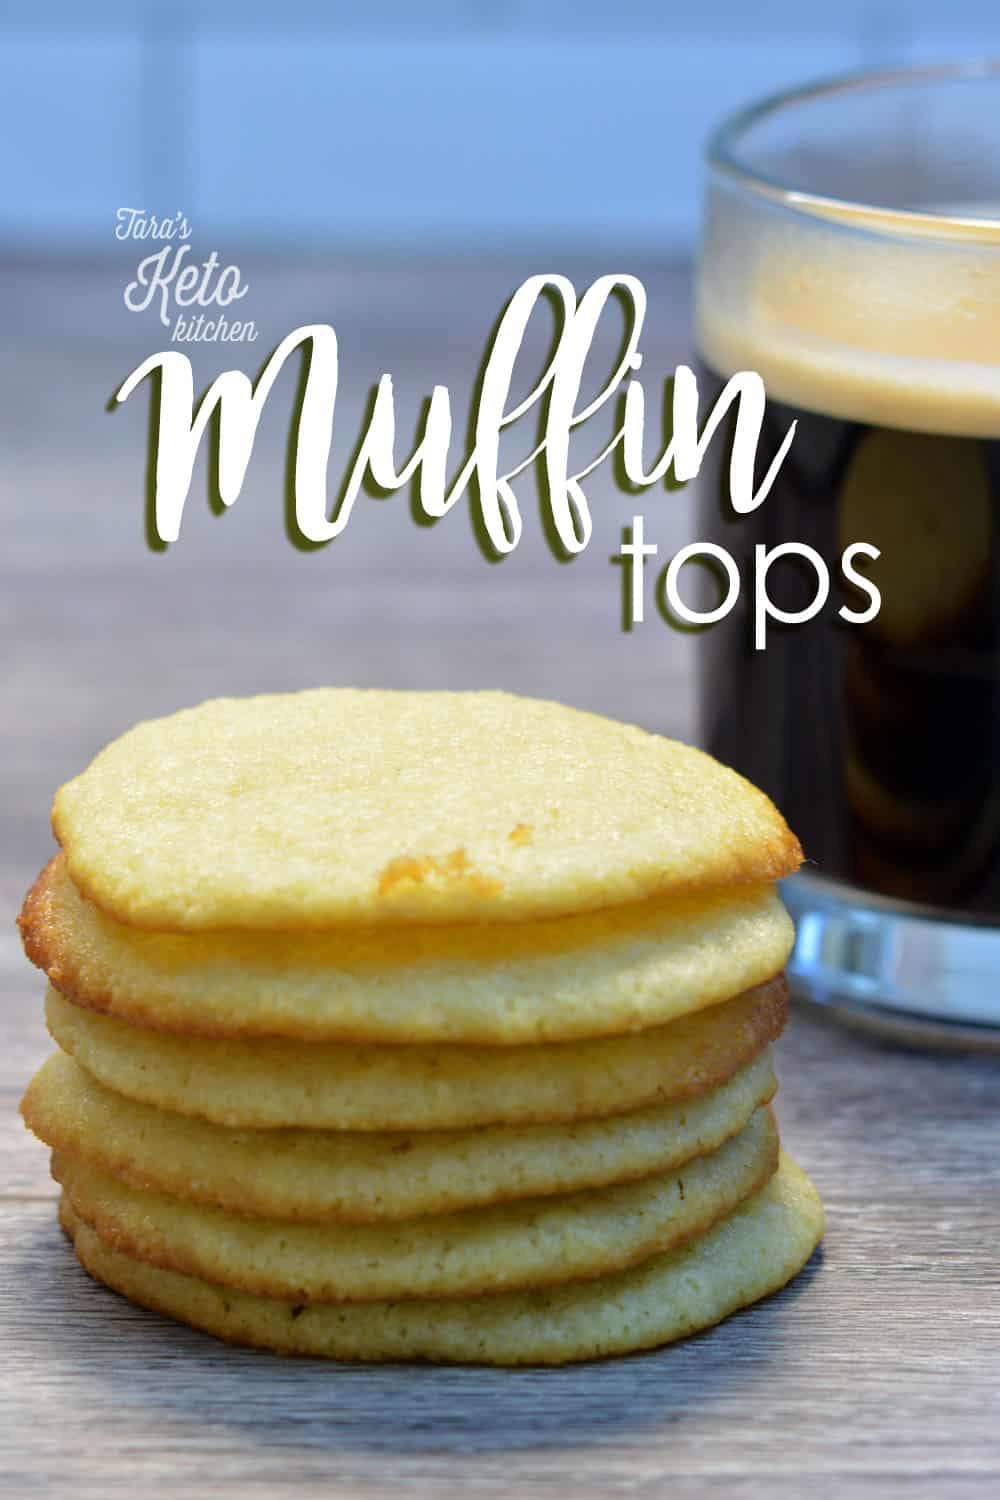 keto muffin tops image